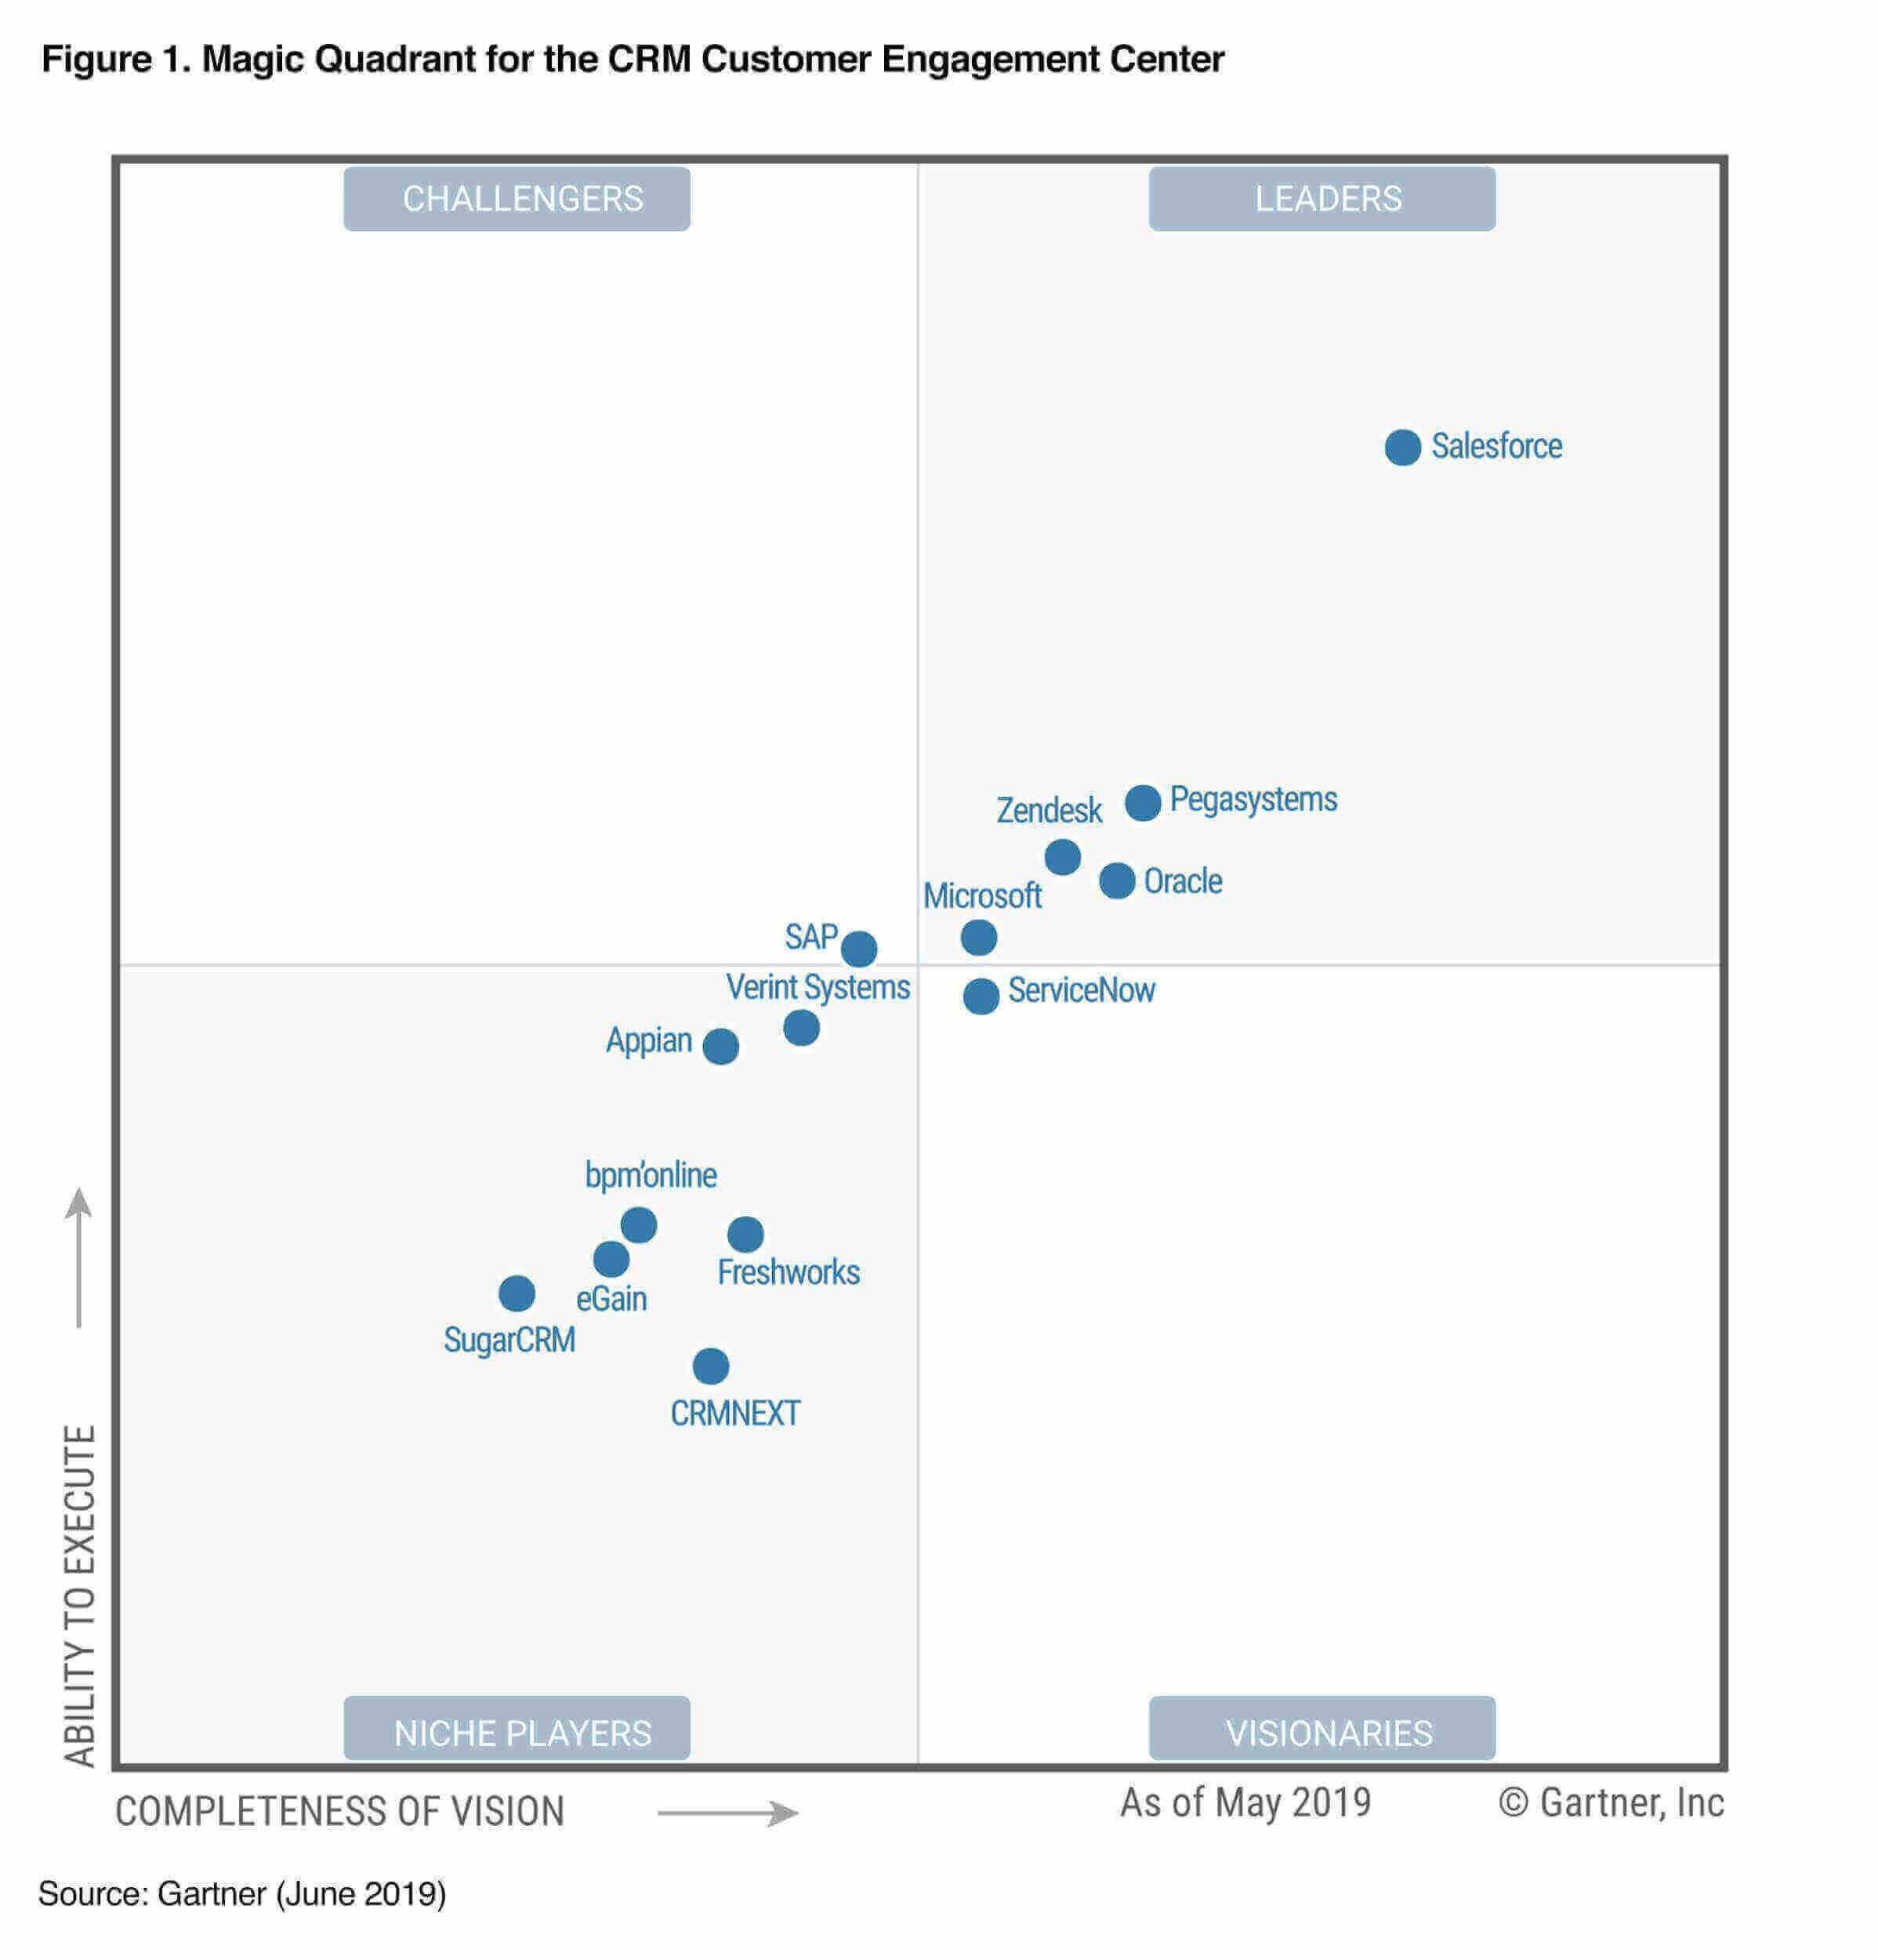 Magic quadrant for the CRM